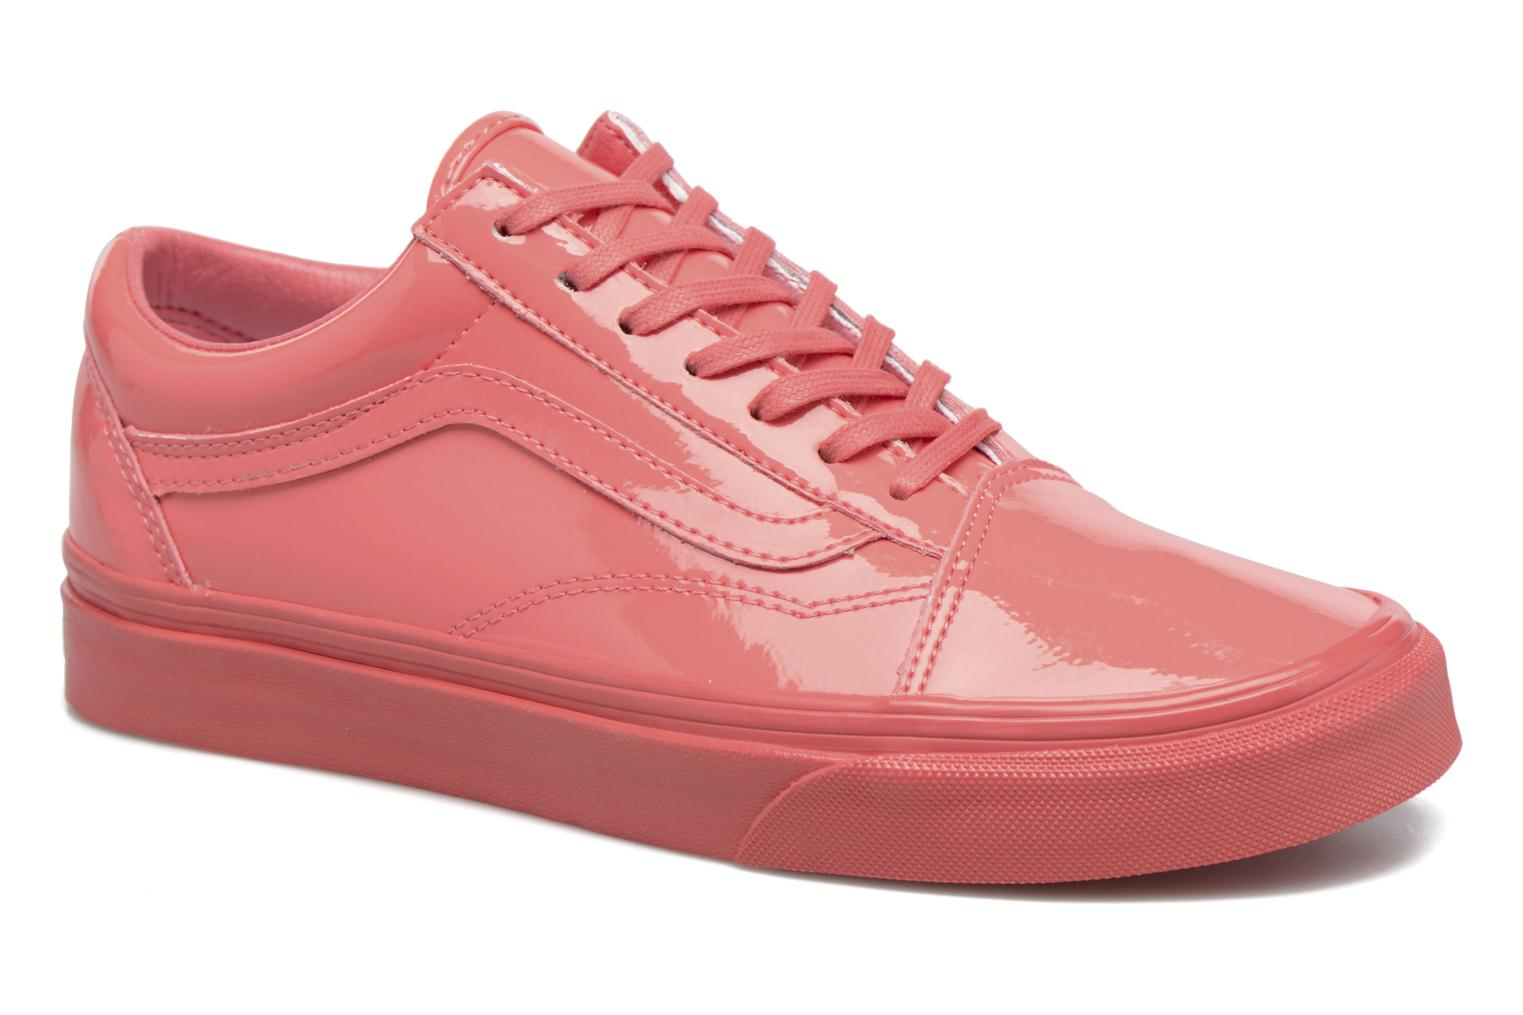 Old Skool W Patent Leather/Sugar Coral